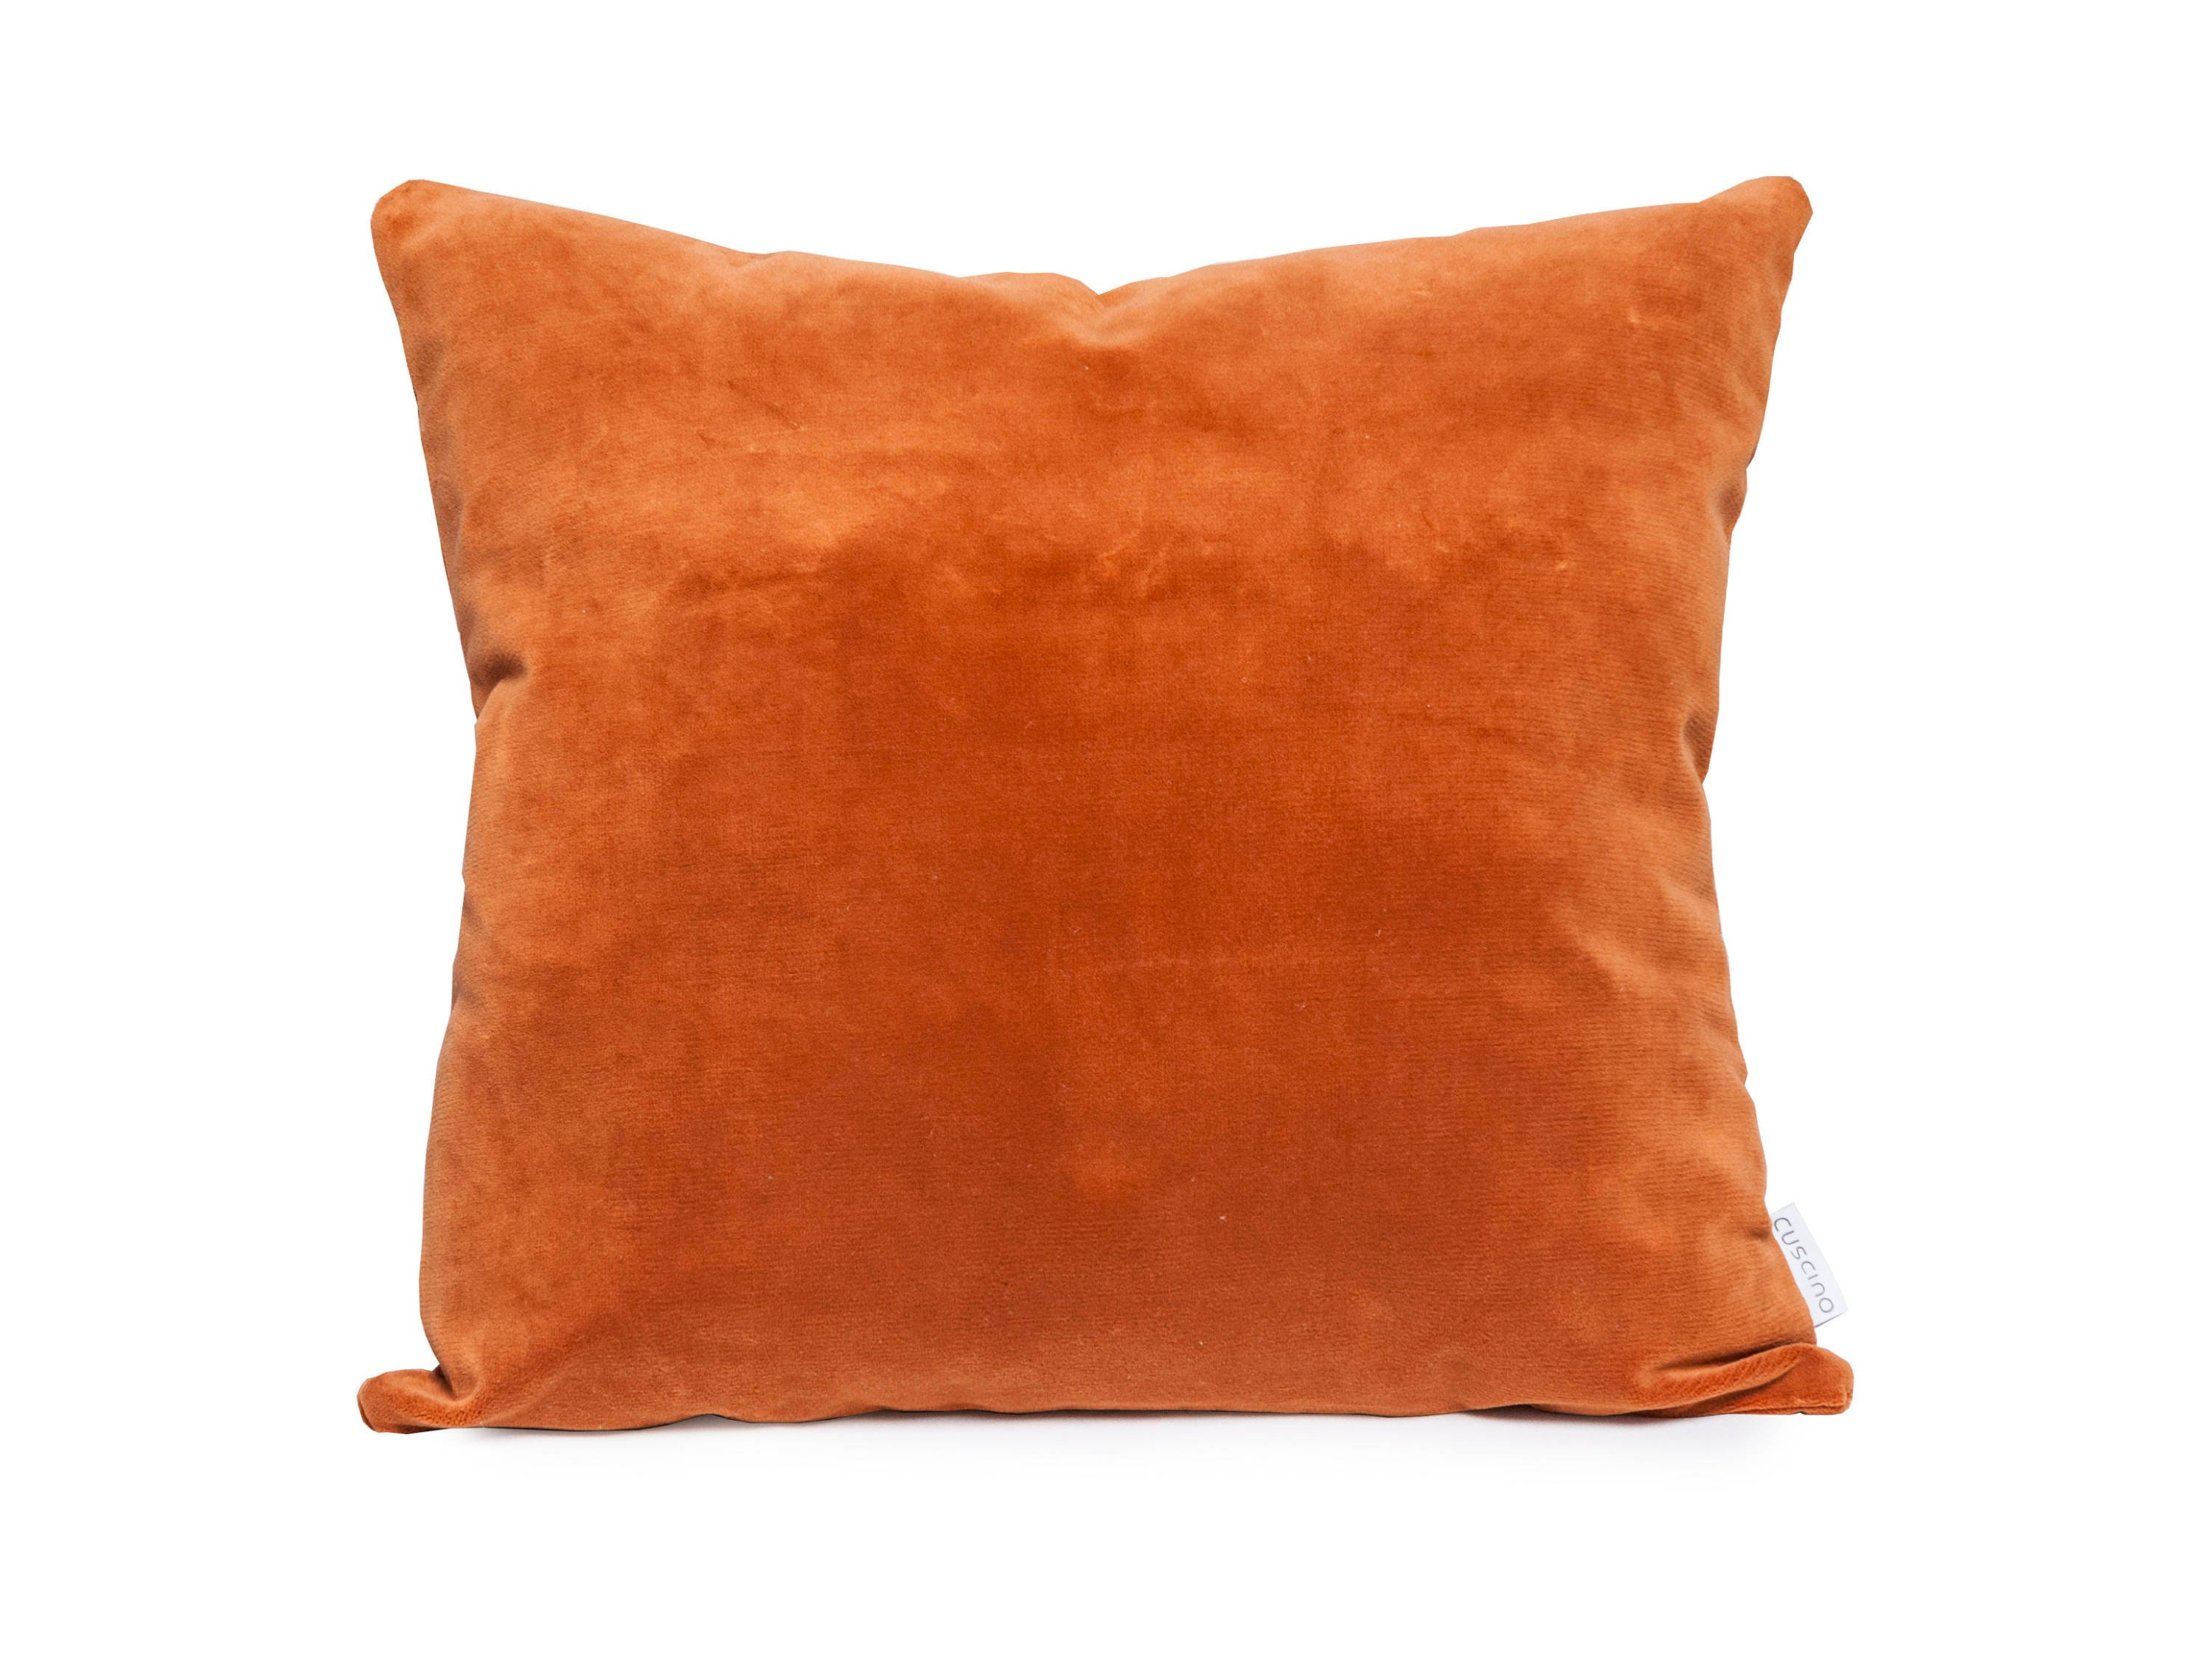 your velvet decor room cotton classic a refresh an of lumbar it way accent instant throw exclusive s our made pillow any pin orange affordable for burnt in is to luxurious